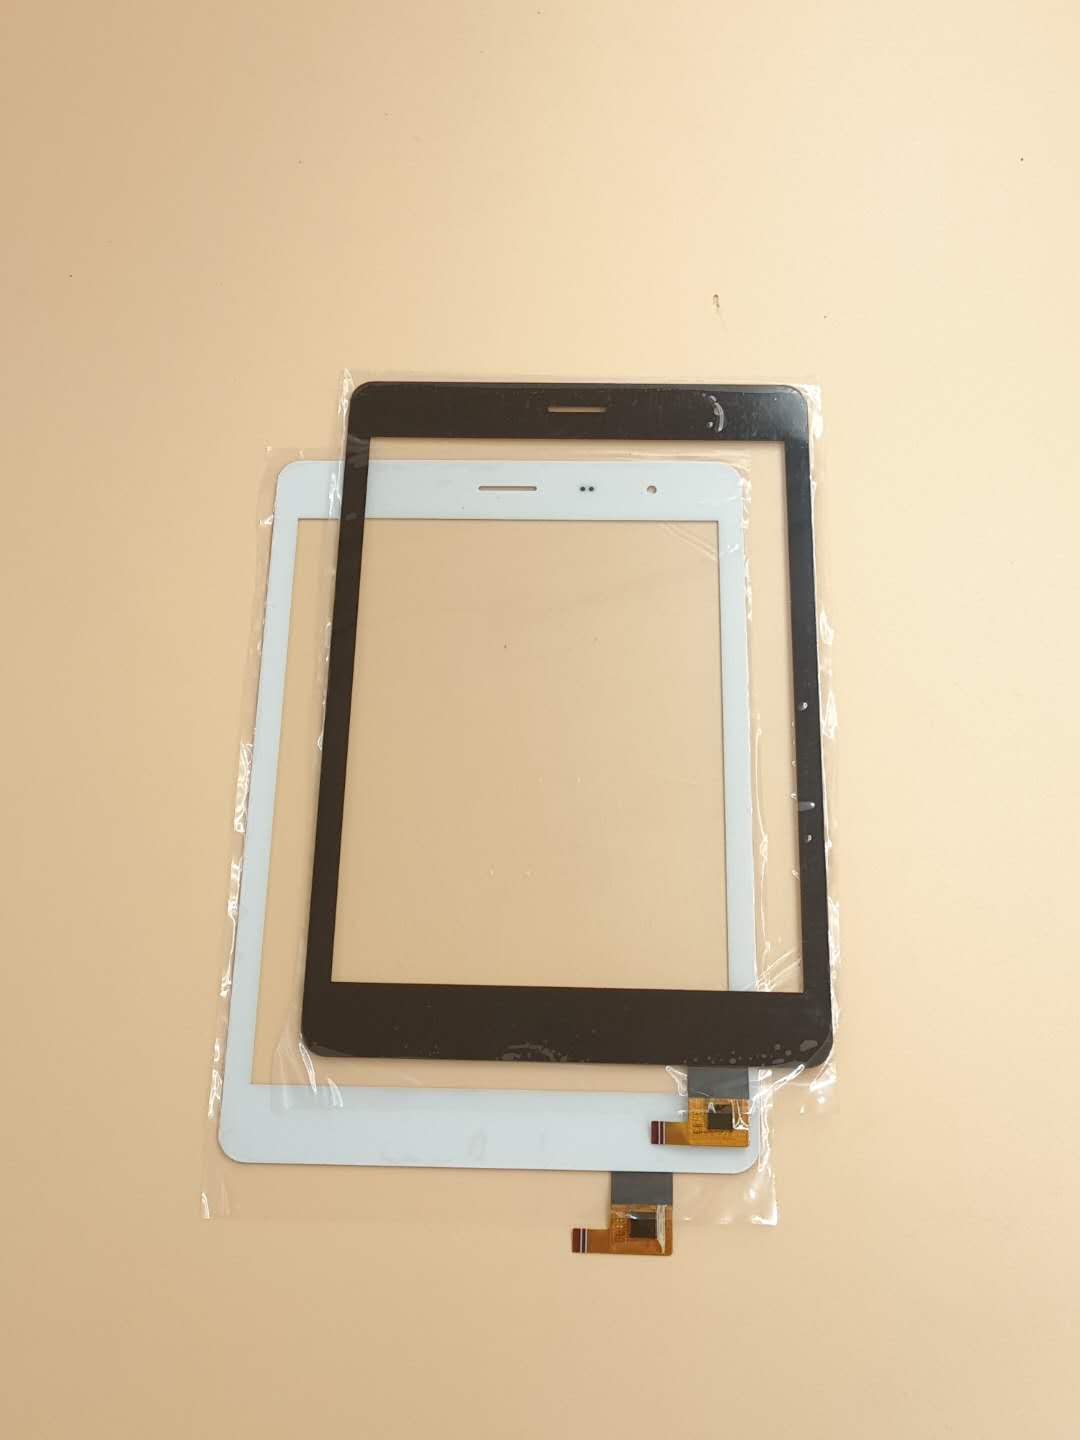 7.85 inch for Qumo Vega 781 tablet pc capacitive touch screen glass digitizer panel 10 1 inch capacitive touch screen panel digitizer glass replacement for goclever aries 101 tablet pc